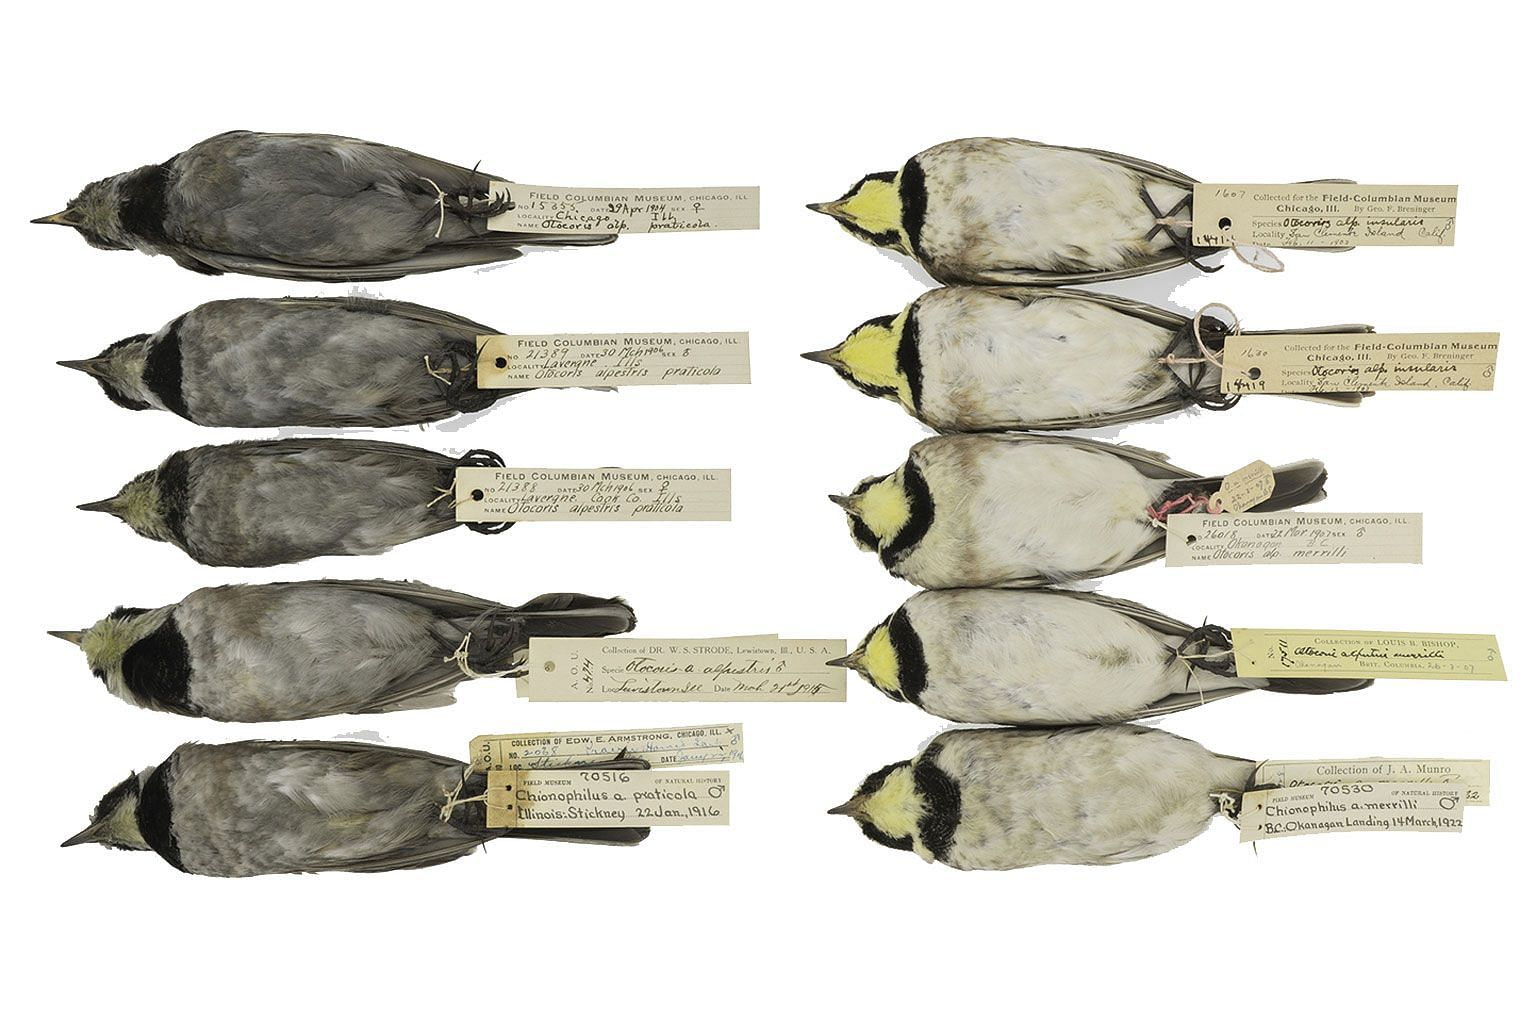 Horned Larks from The Field Museum's collections, with grey birds from the turn of the century and cleaner birds from more recent years when there was less soot in the atmosphere.